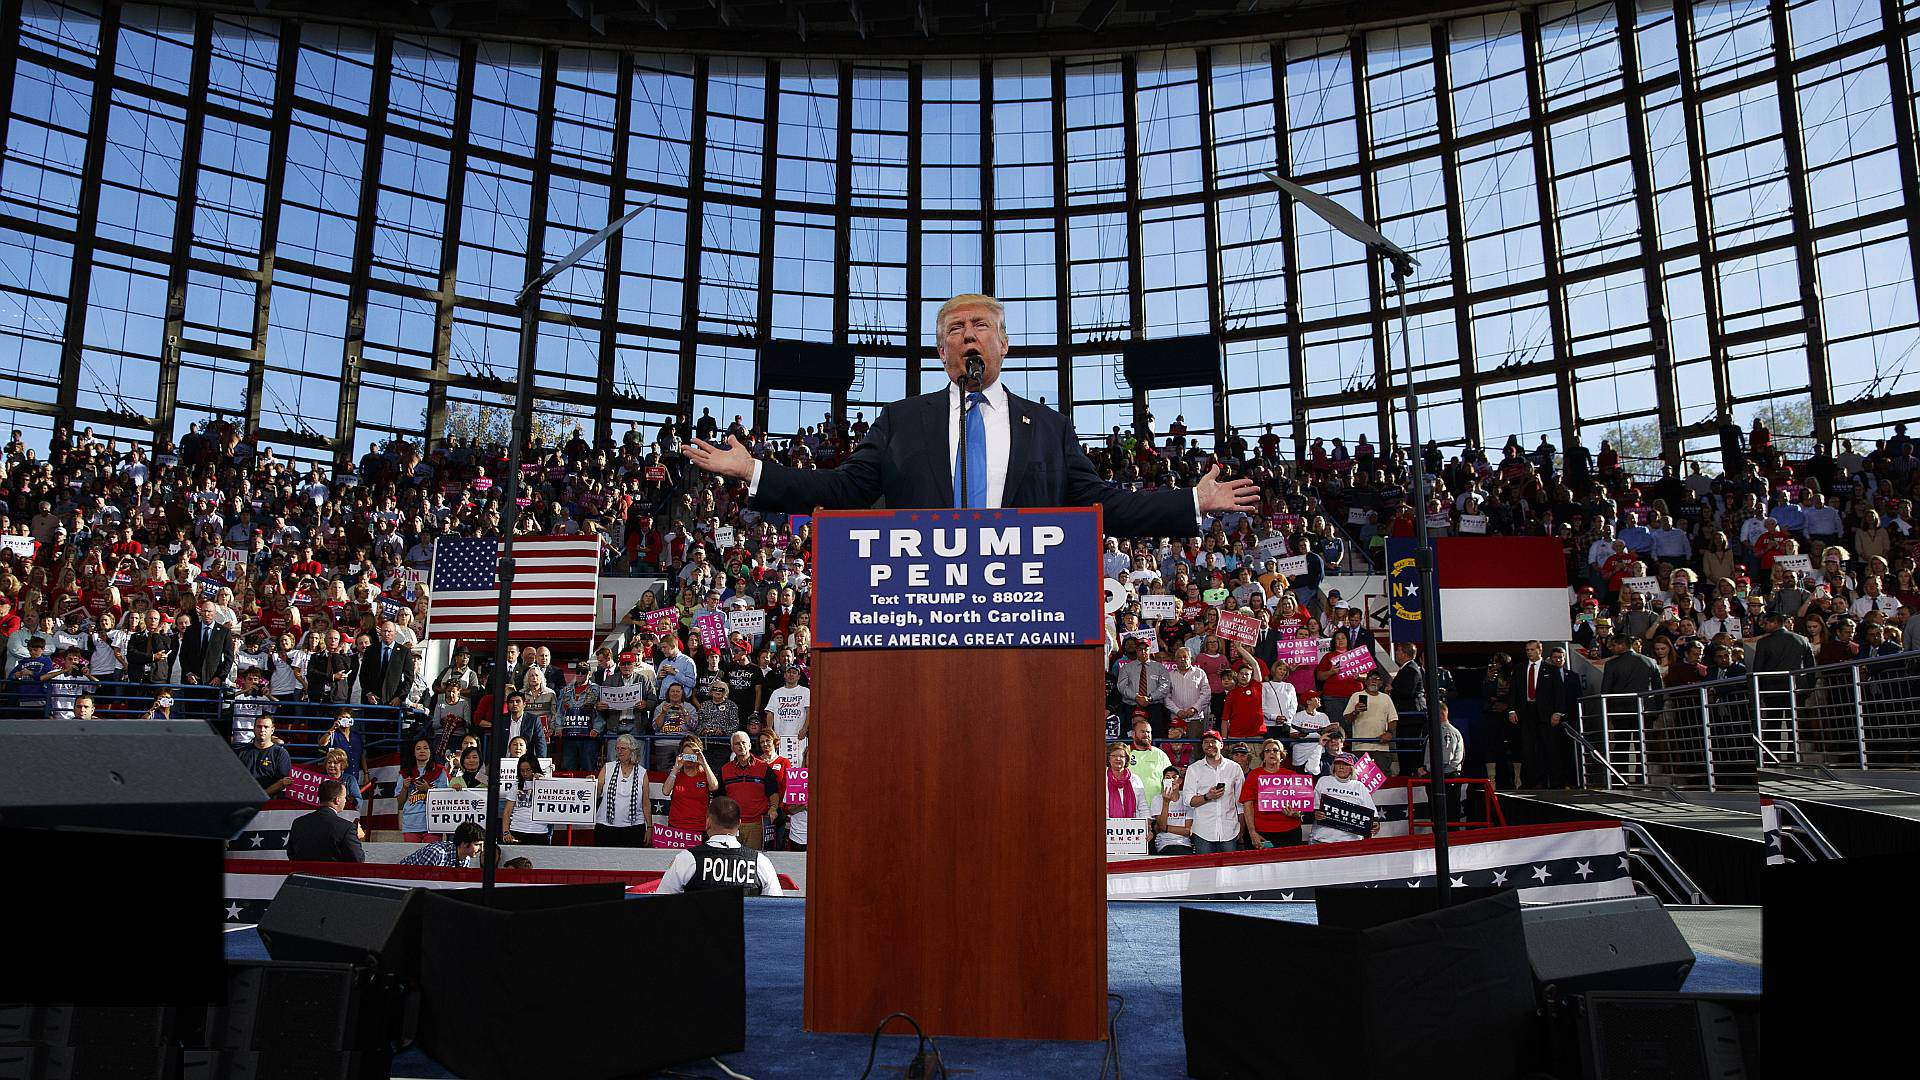 President Trump has a huge rally in Raleigh, South Carolina, he is standing at a podium facing the camera arms spread wide the crowd behind him is going wild they are seated in front of a giant glass wall, it looks very impresive